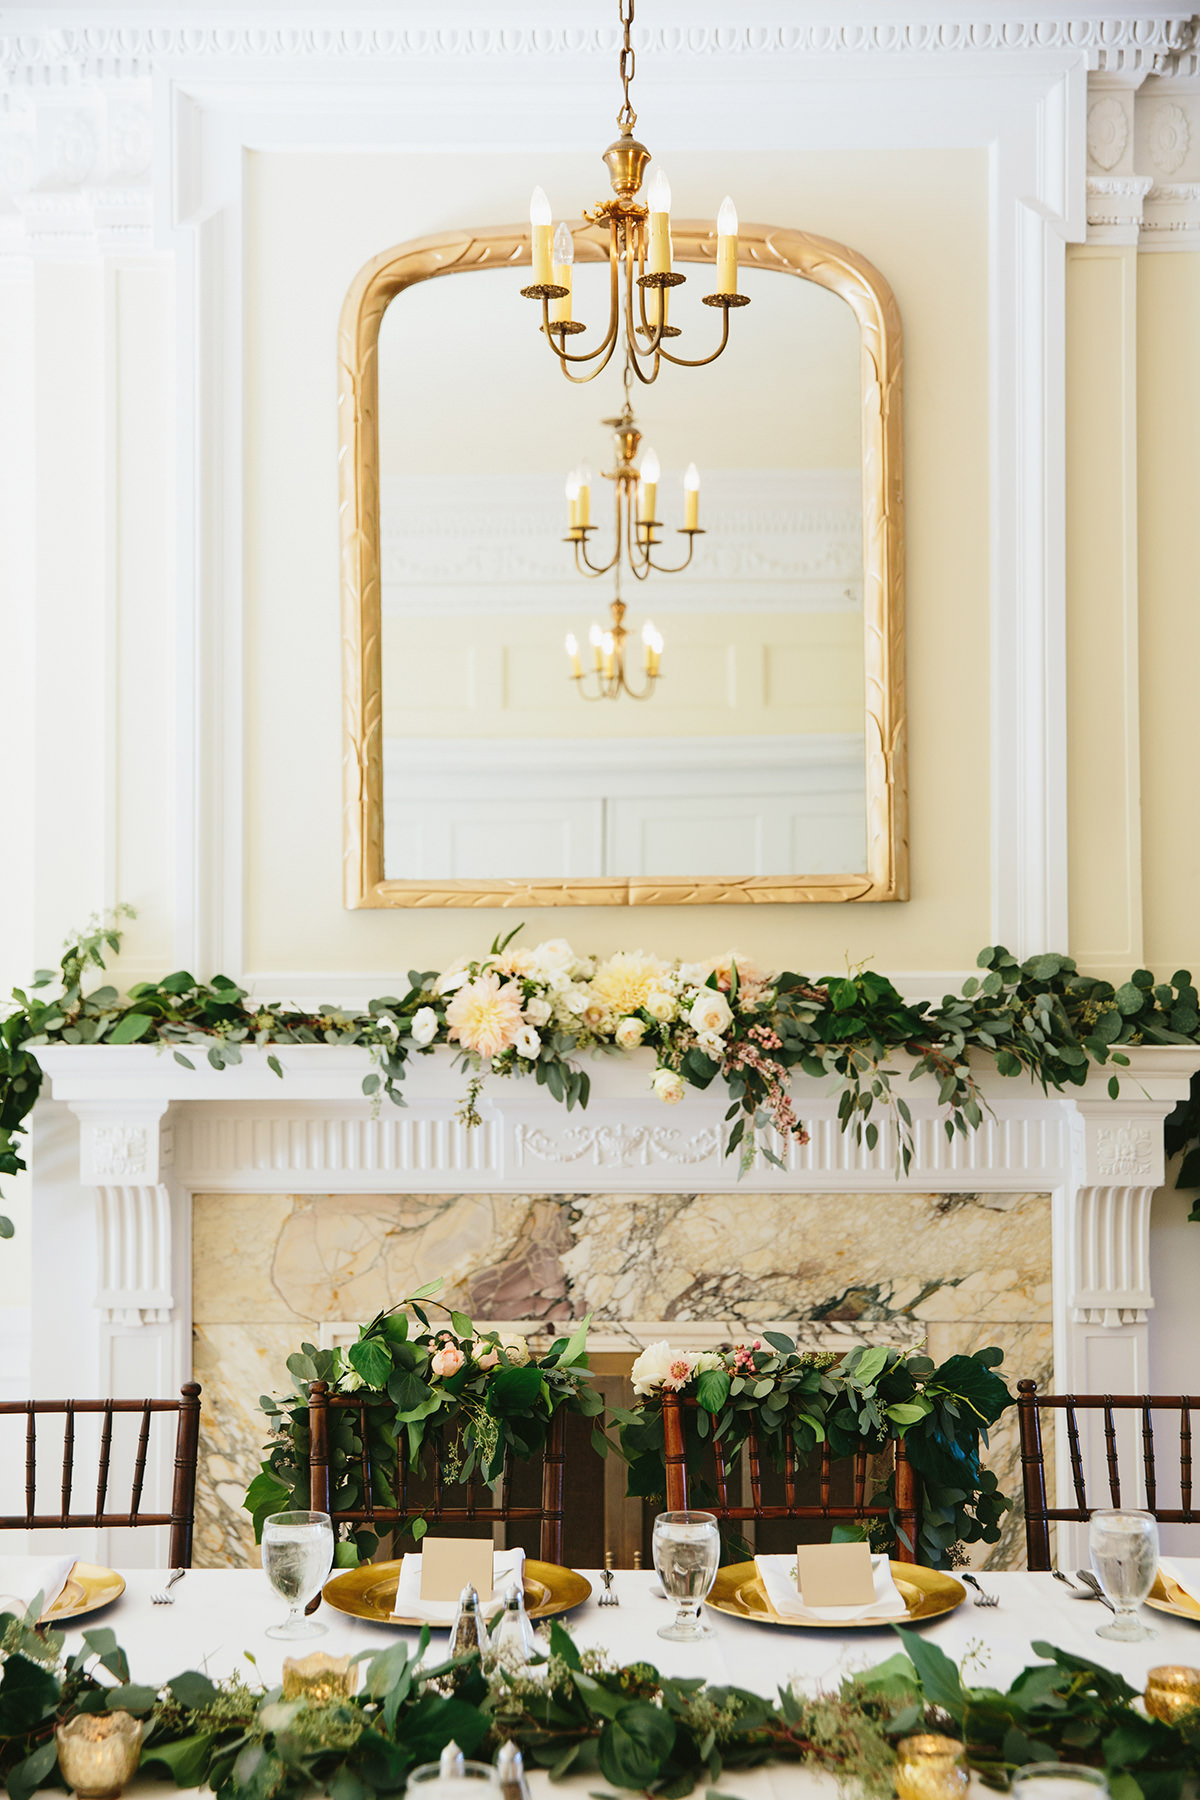 Destination vancouver wedding at cecil green park house lucida wedding decor of the dining room in cecil green park house vancouver lucida junglespirit Image collections